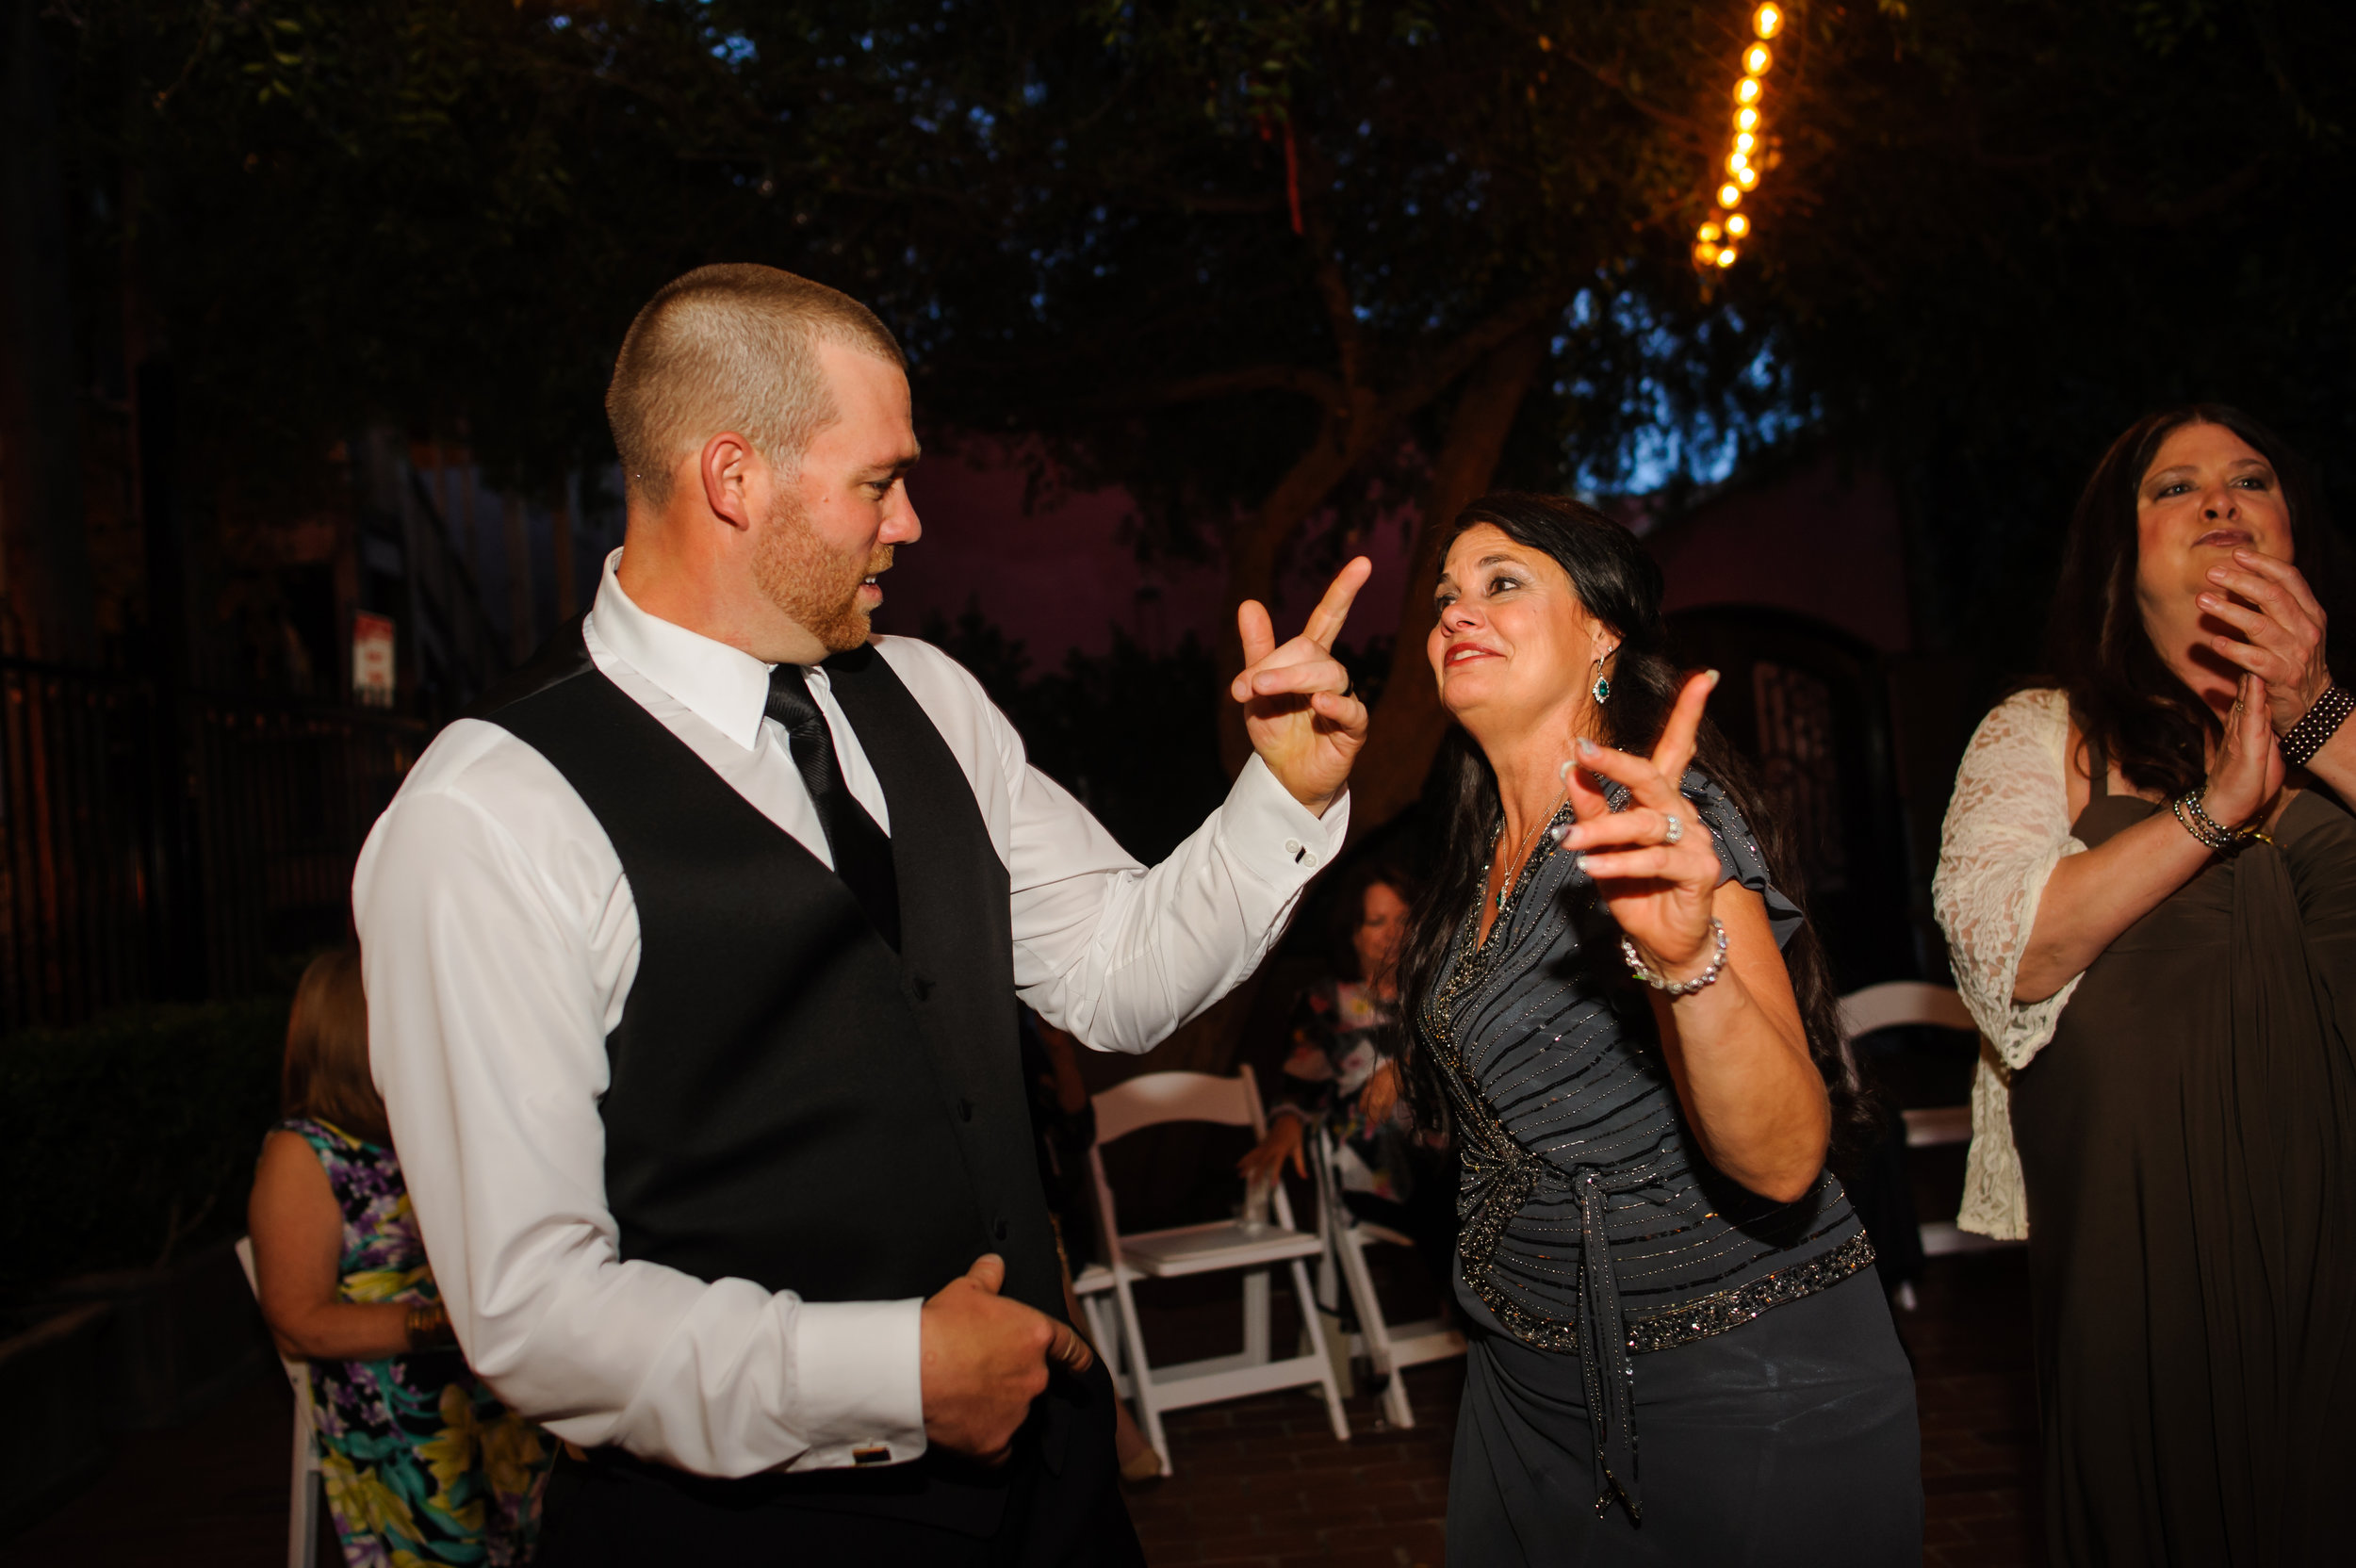 jenelle-brian-001-courtyard-d'oro-old-sacramento-wedding-photographer-katherine-nicole-photography044.JPG